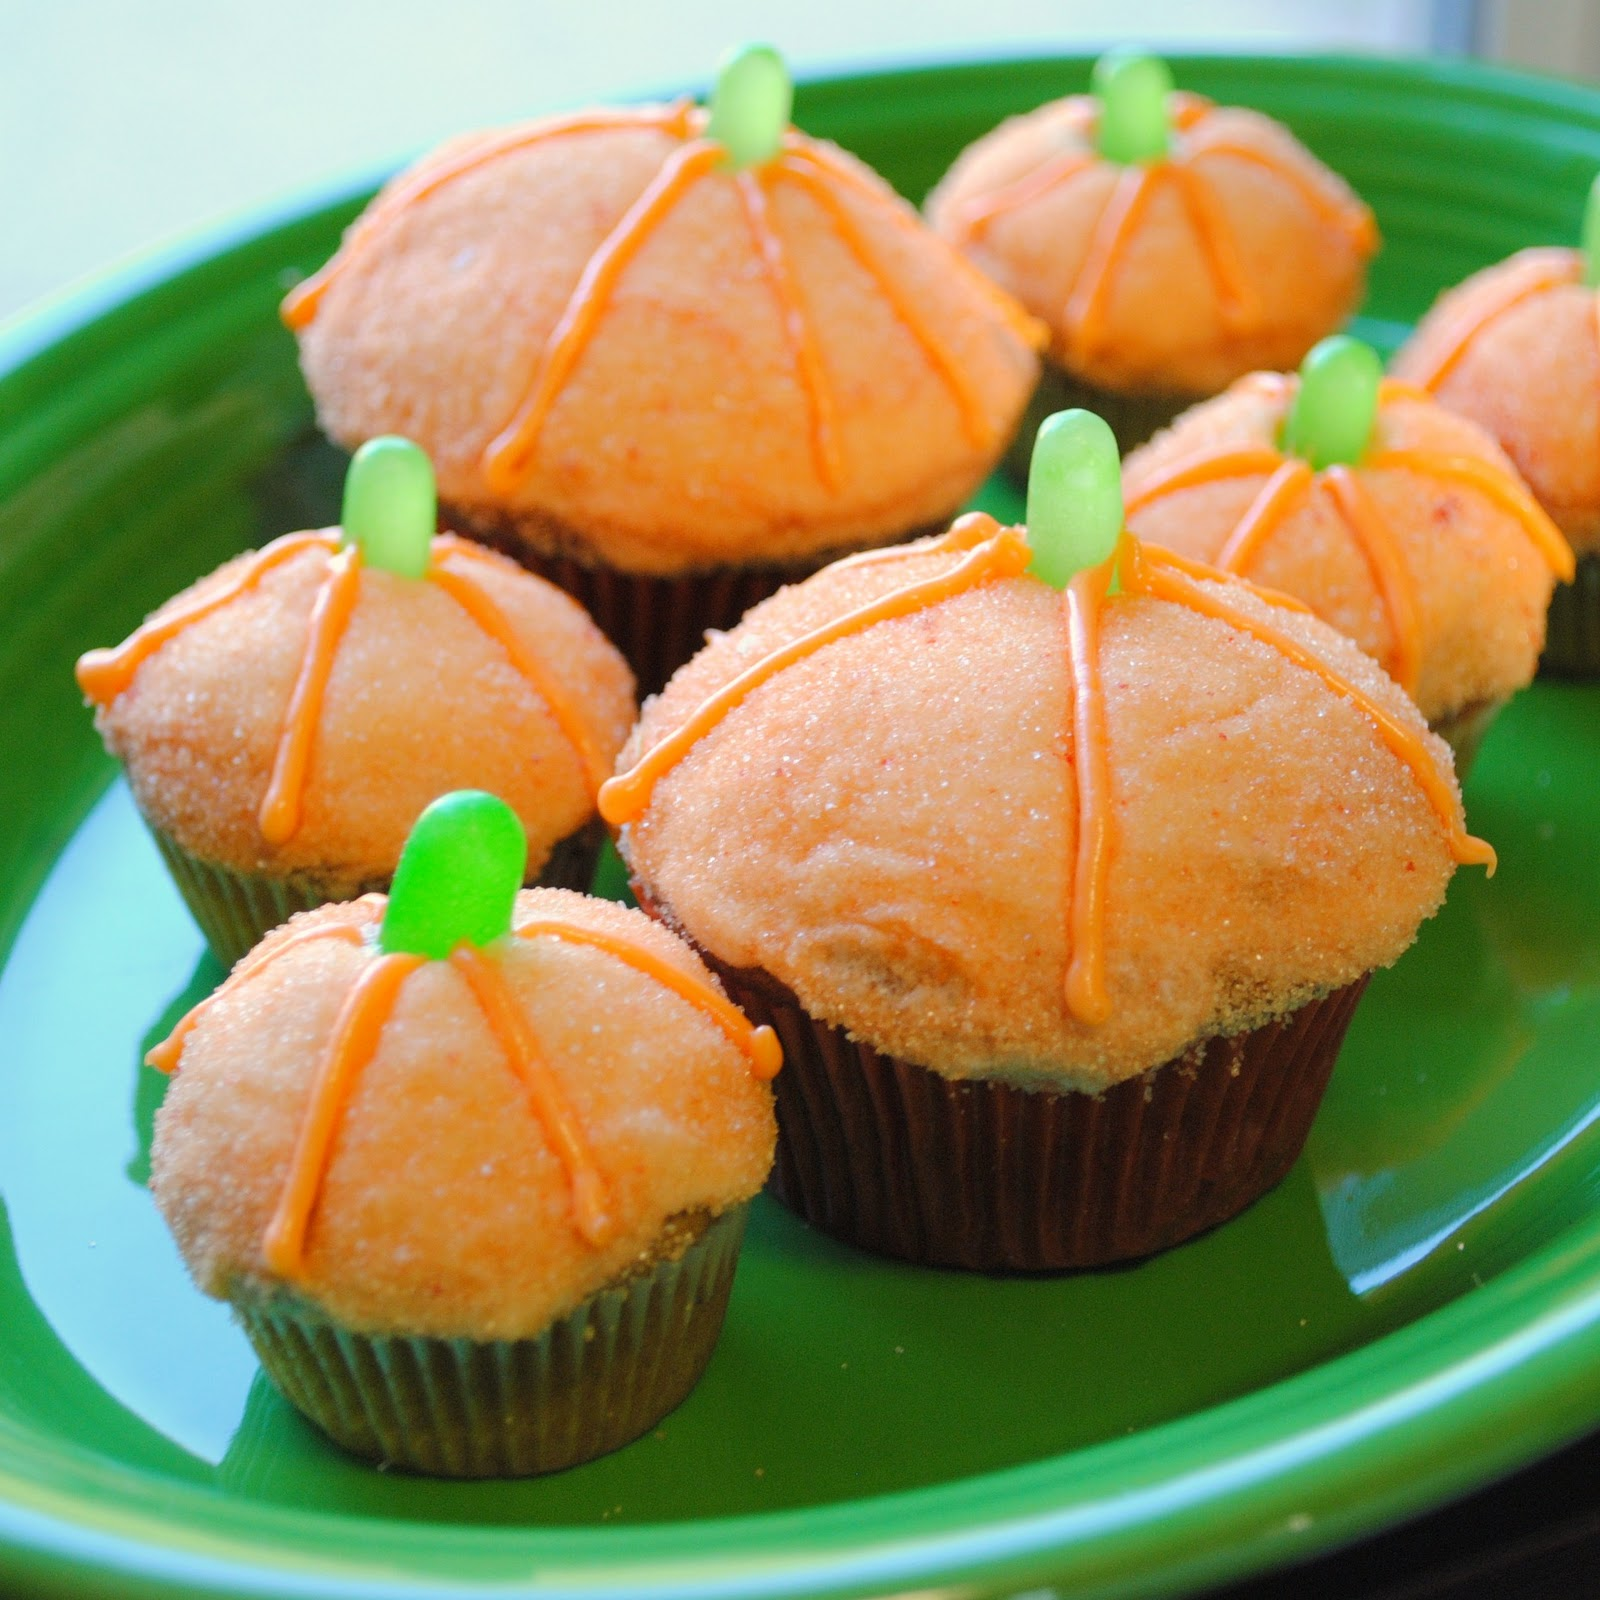 These are pumpkin cupcakes with cream cheese frosting rolled in orange ...